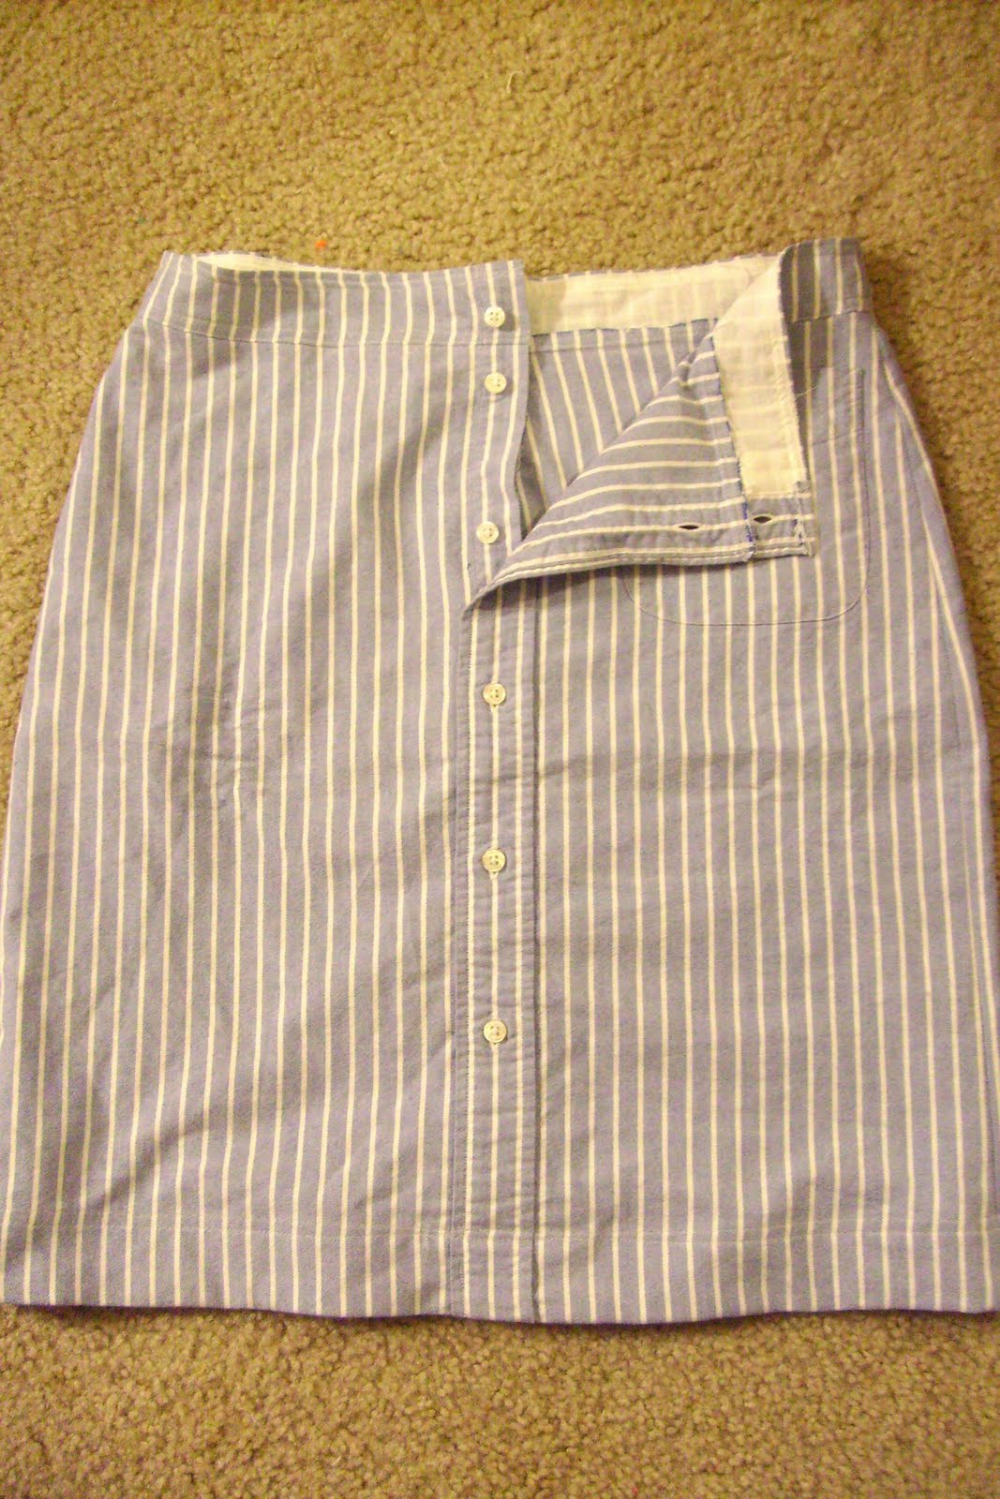 One of the greatest men's shirt makeovers ever--tutorial!